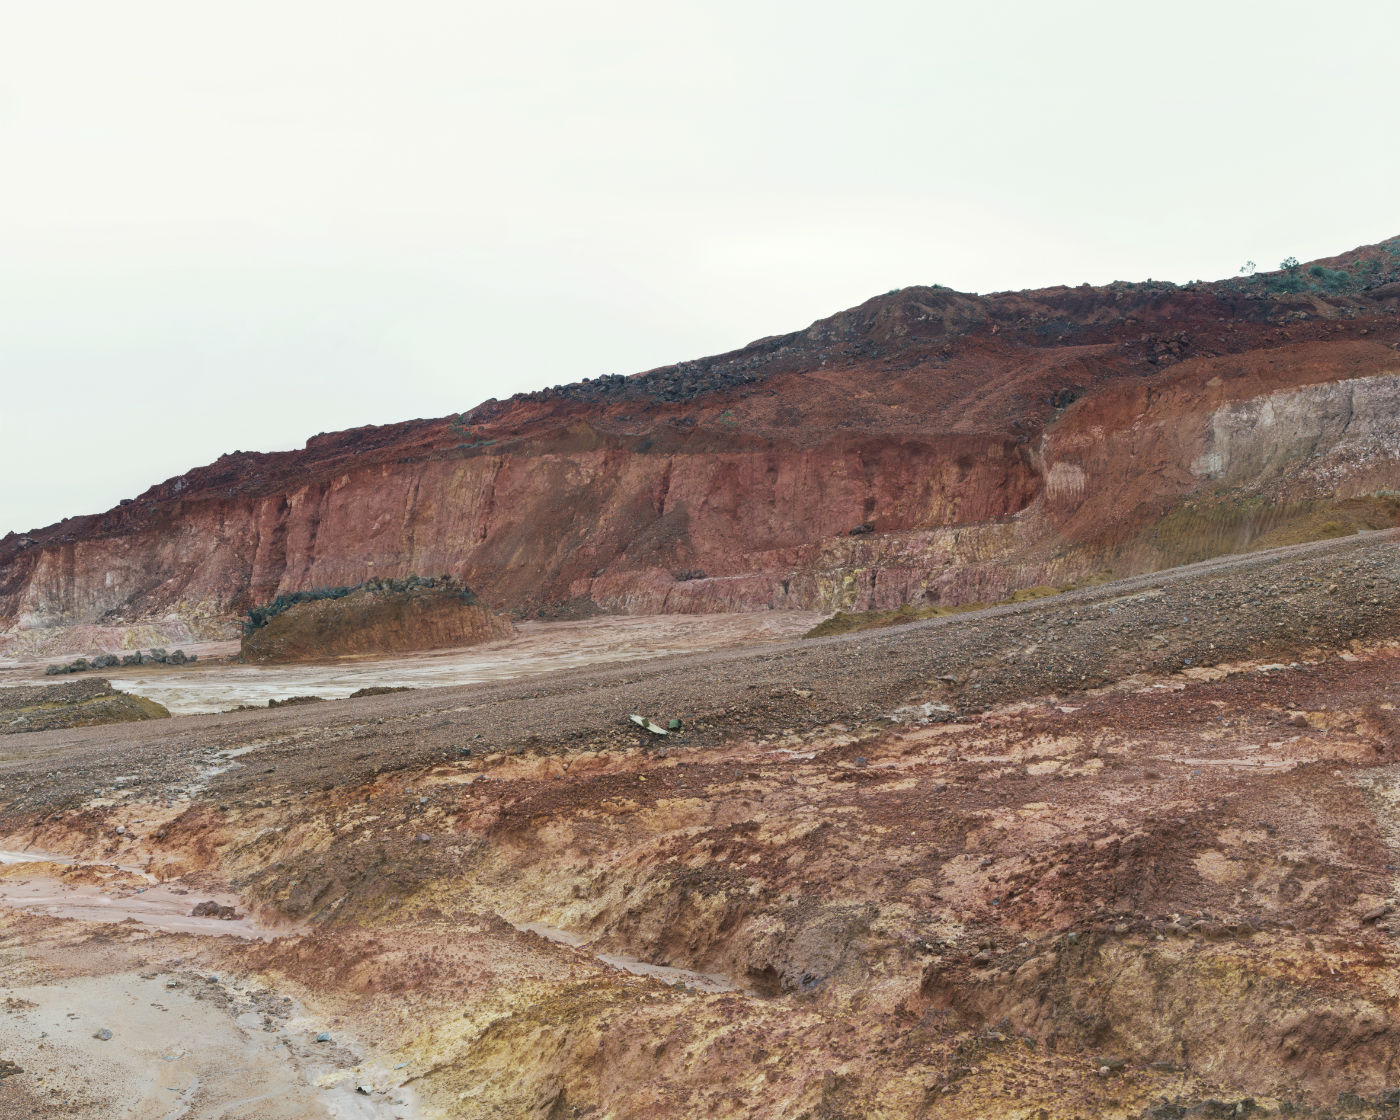 Mining sand for construction on Batam island bordering Singapore. (Photograph: Bas Princen, 2012)